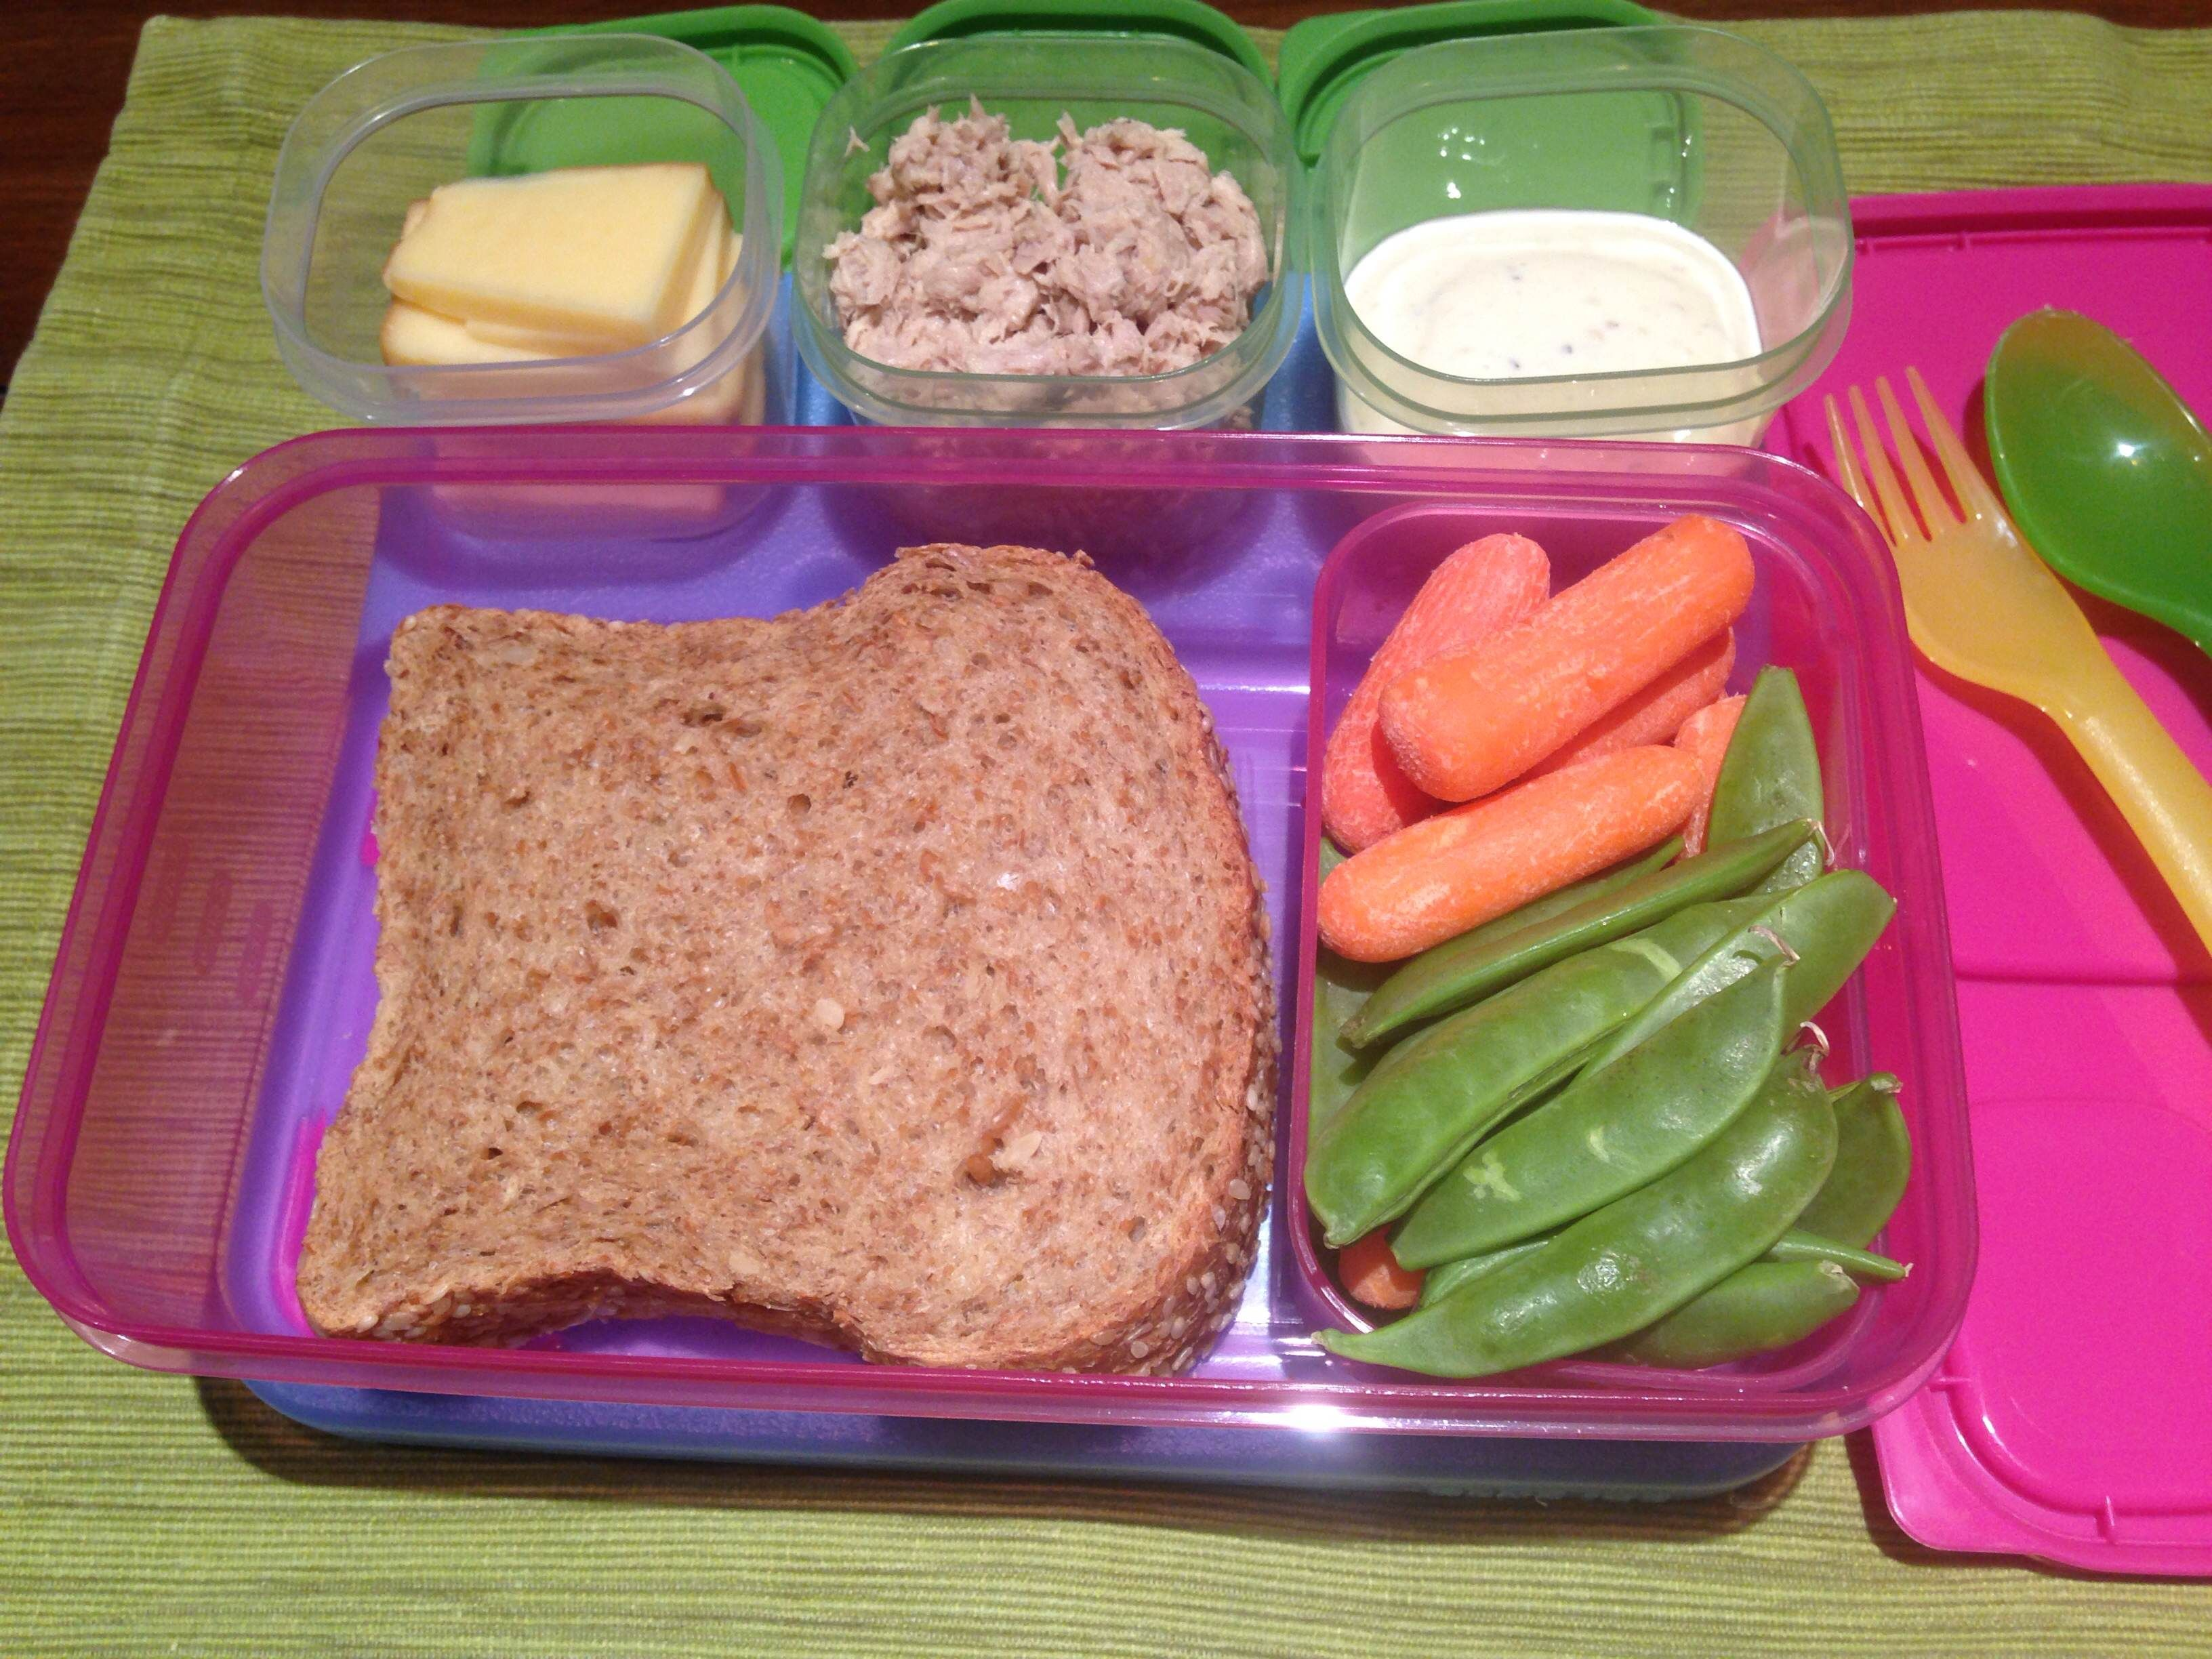 My Top 5 Nutrition Tips For Working Parents Food, School